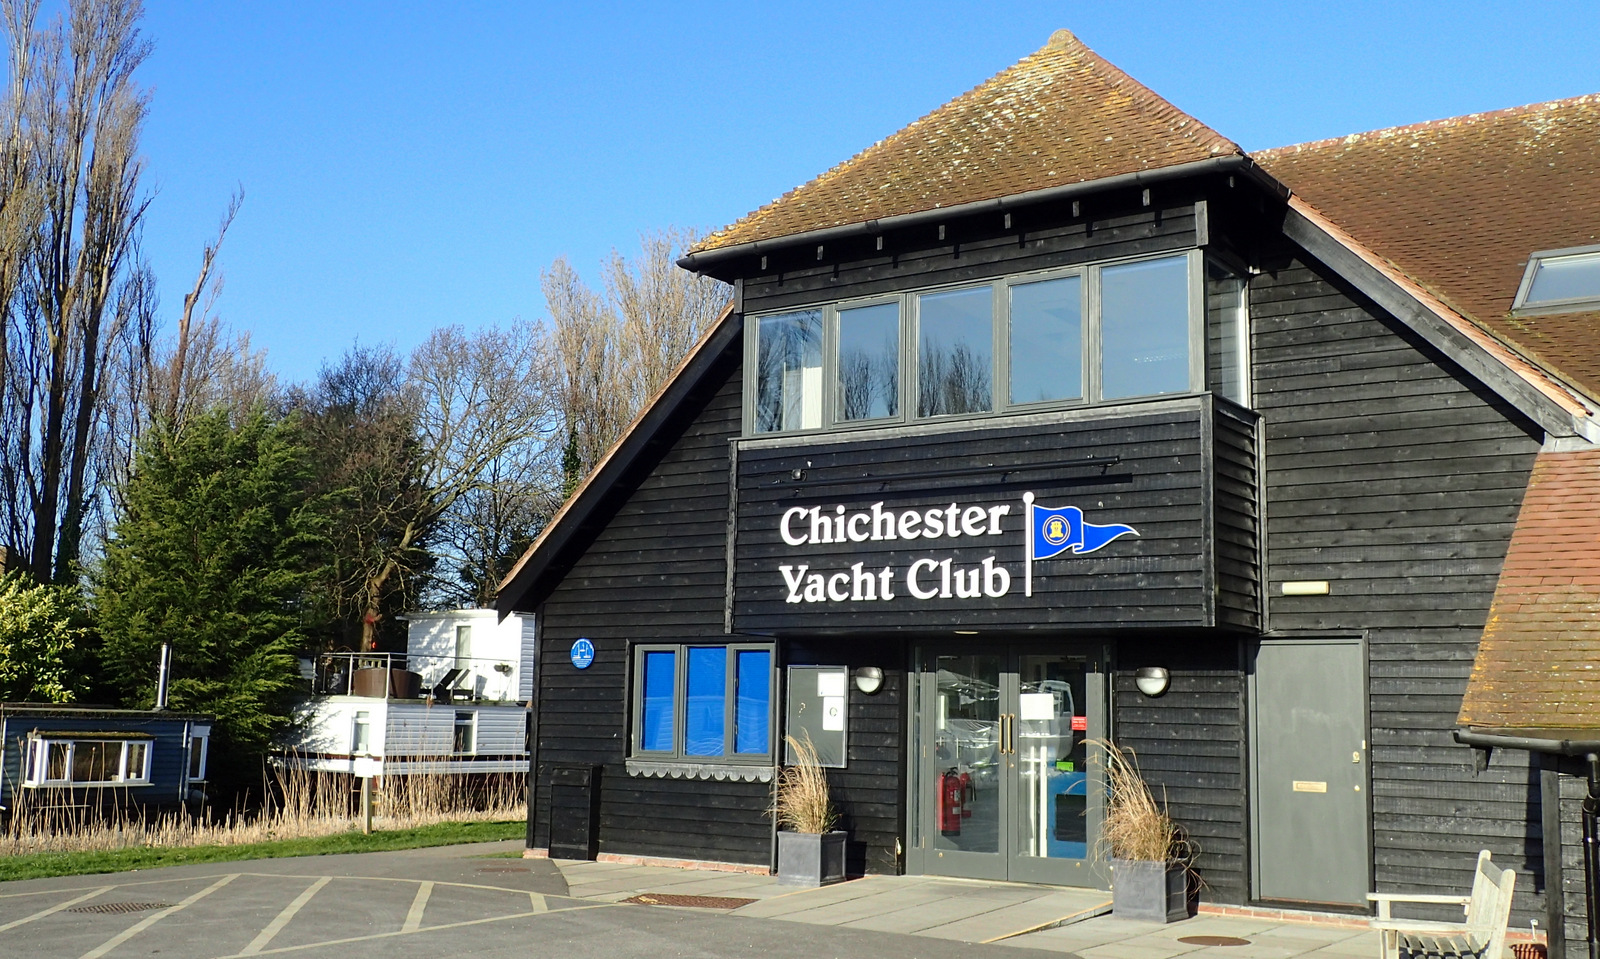 Hospitality Chichester Yacht Club